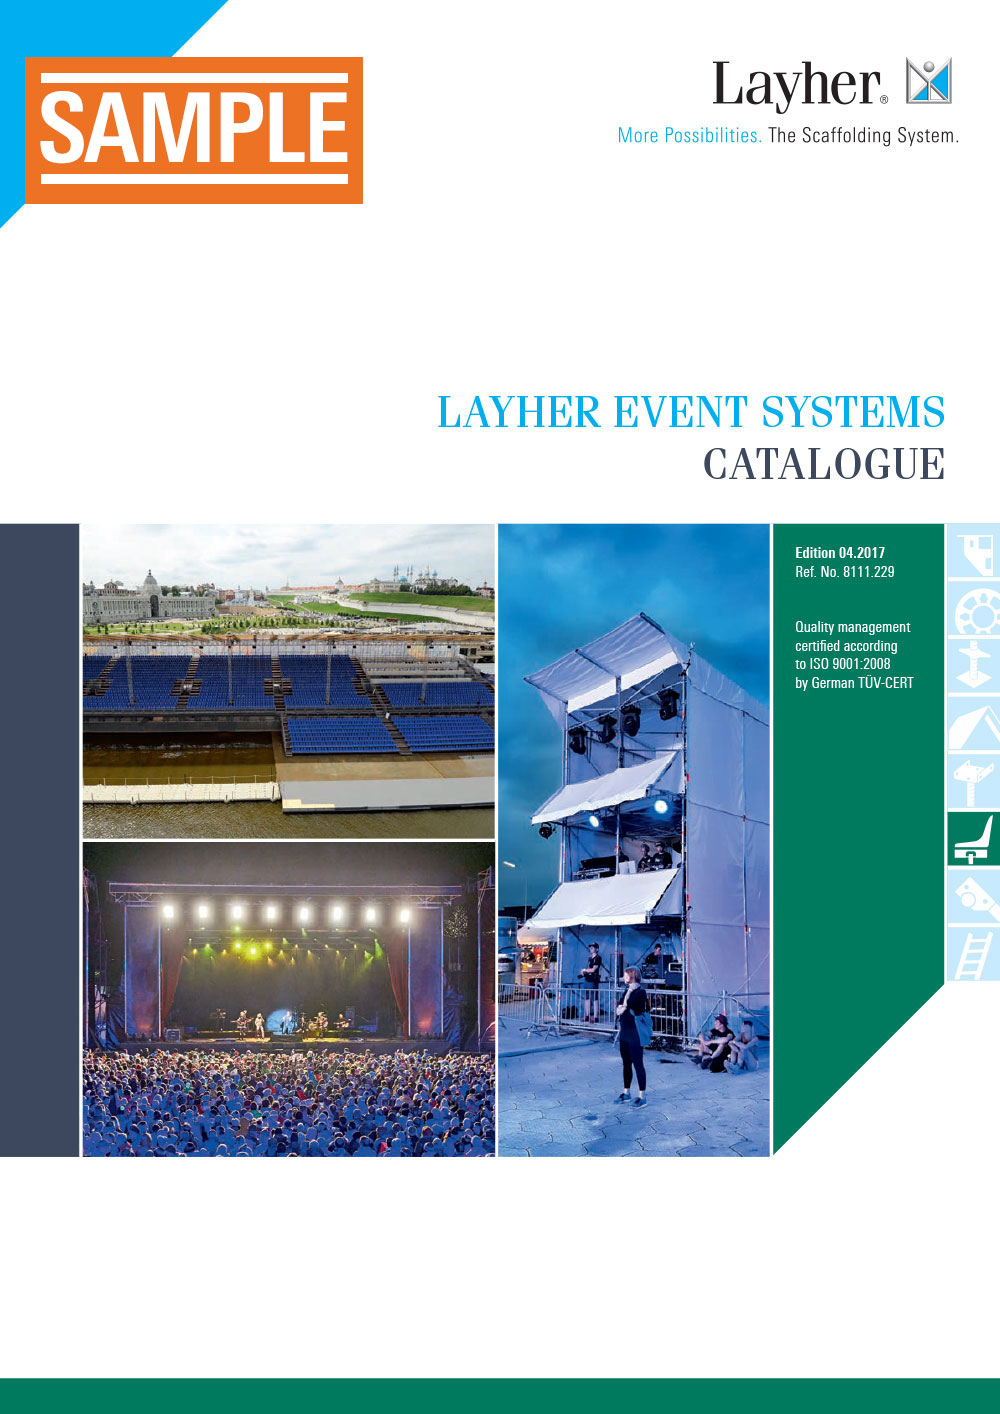 Layher Event Systems Catalogue